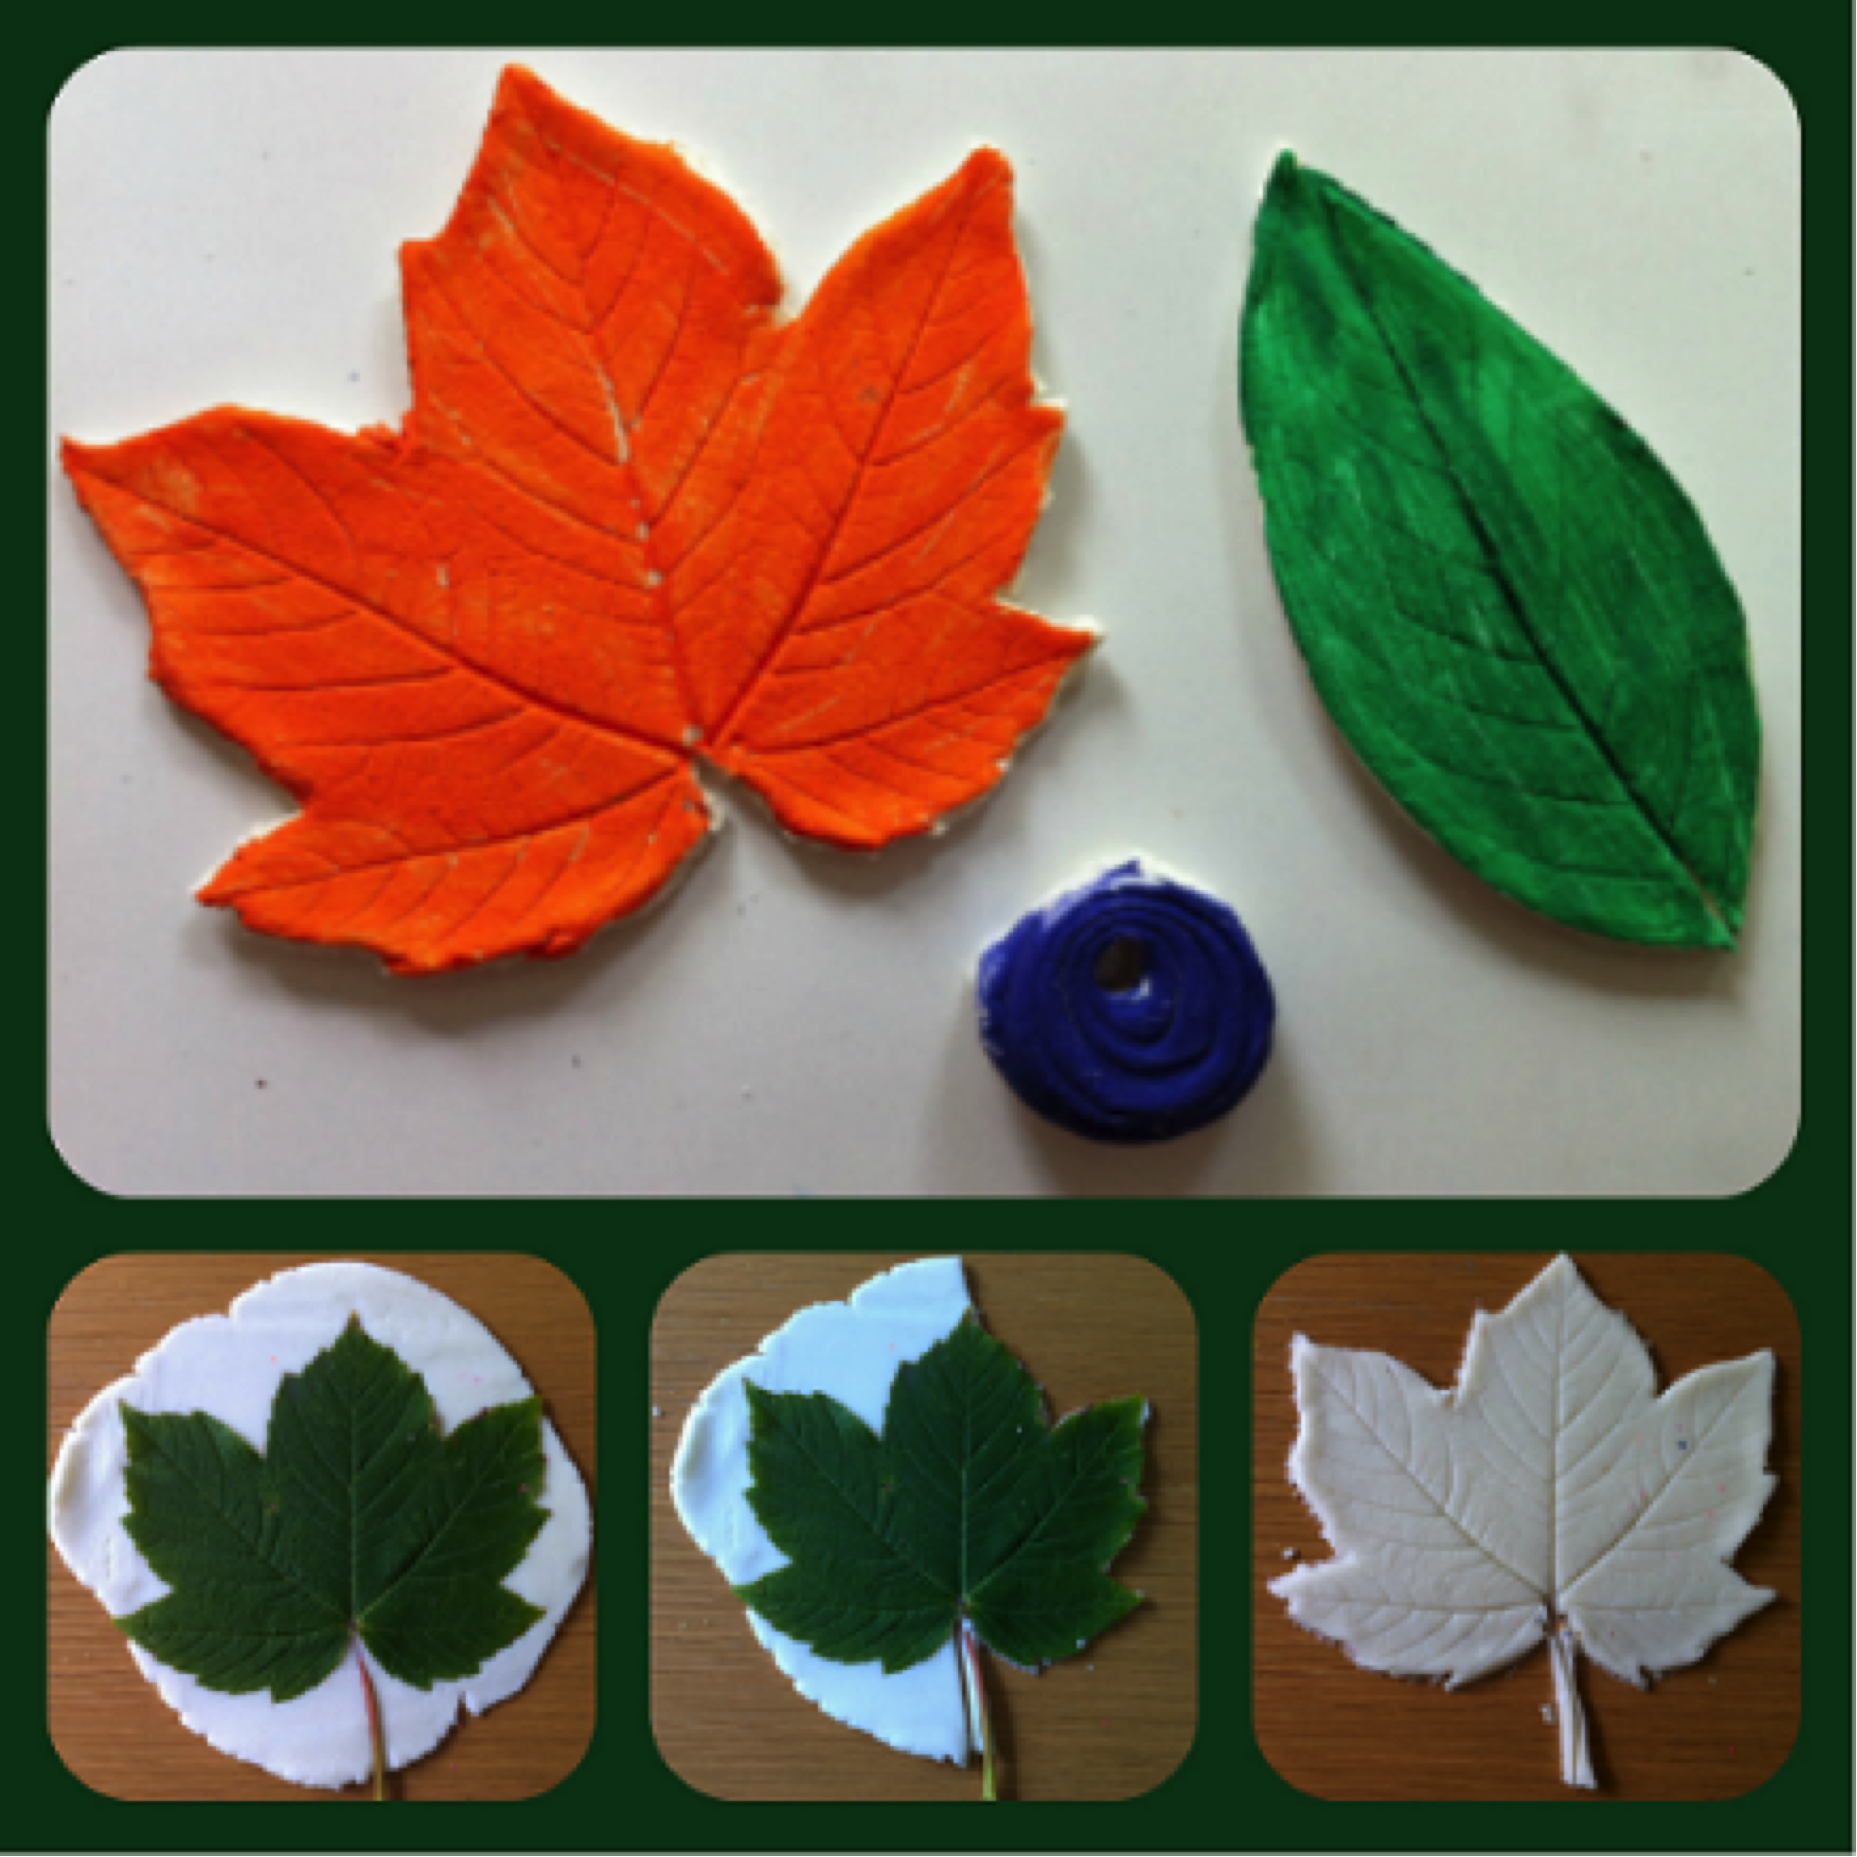 Impressing leaves on #ceramics. A #fun activity for your #kids or a creative #decoration for your living room. #turkishceramics